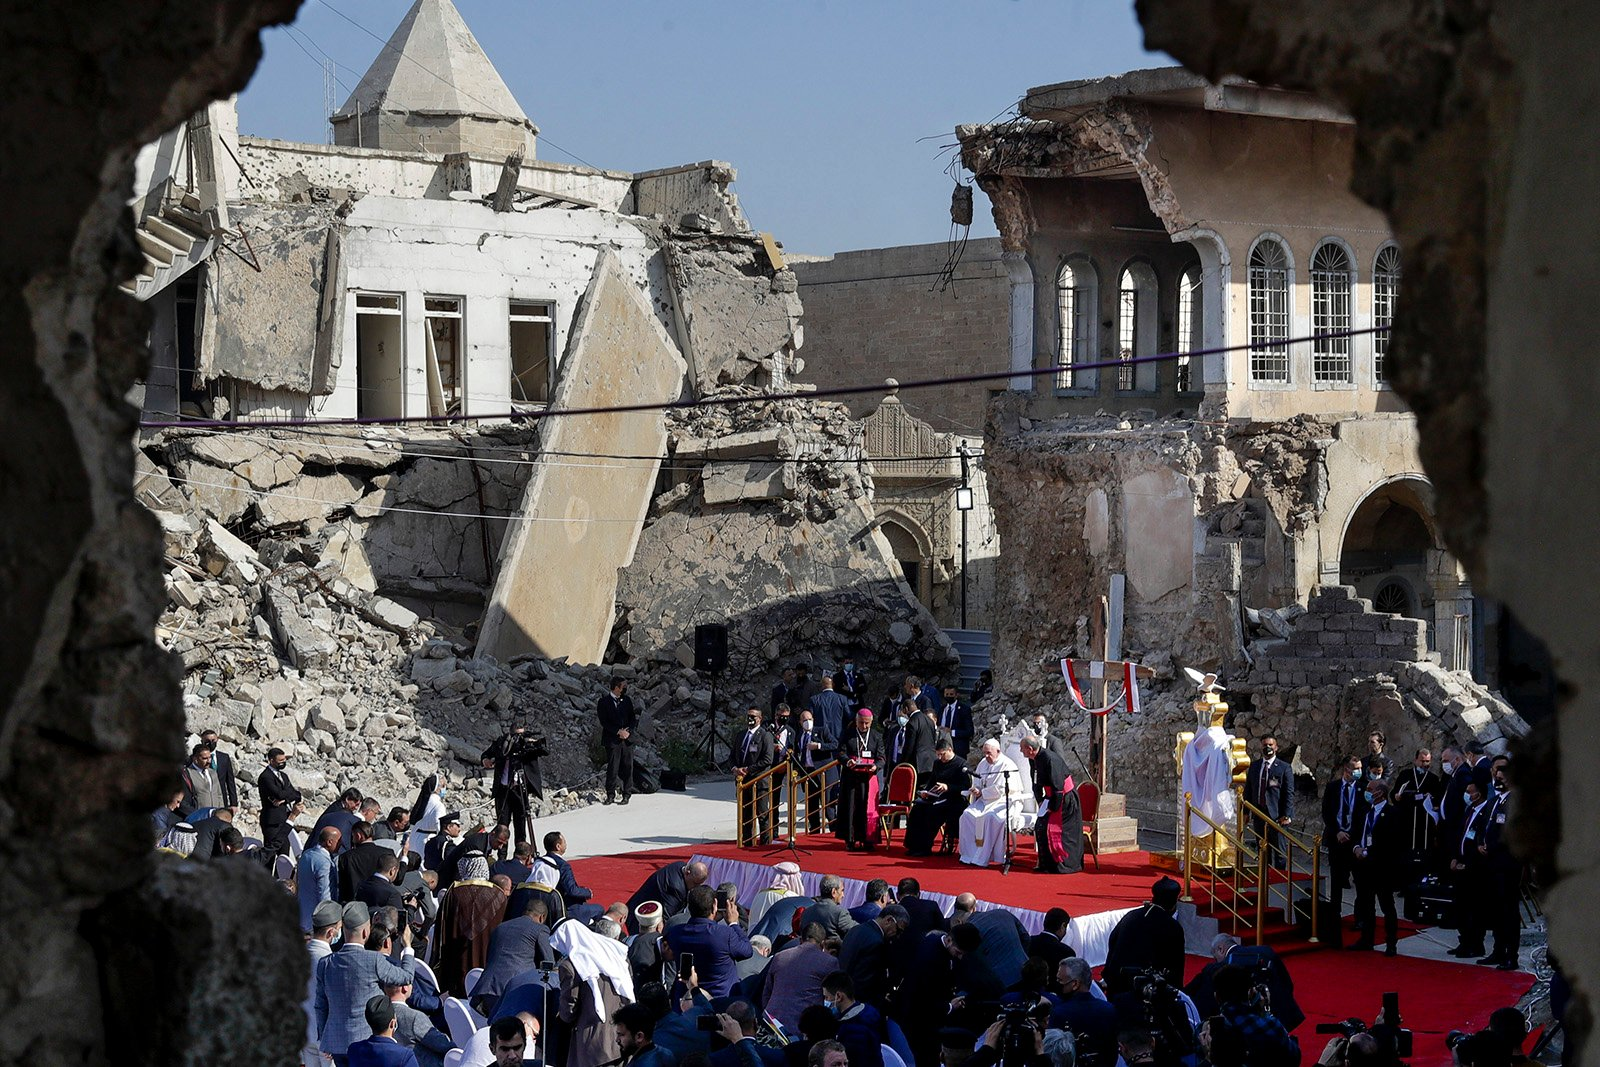 Pope Francis, surrounded by shells of destroyed churches, leads a prayer for the victims of war at Hosh al-Bieaa Church Square, in Mosul, Iraq, once the de-facto capital of ISIS, Sunday, March 7, 2021. The long 2014-2017 war to drive ISIS out left ransacked homes and charred or pulverized buildings around the north of Iraq, all sites Francis visited on Sunday. (AP Photo/Andrew Medichini)